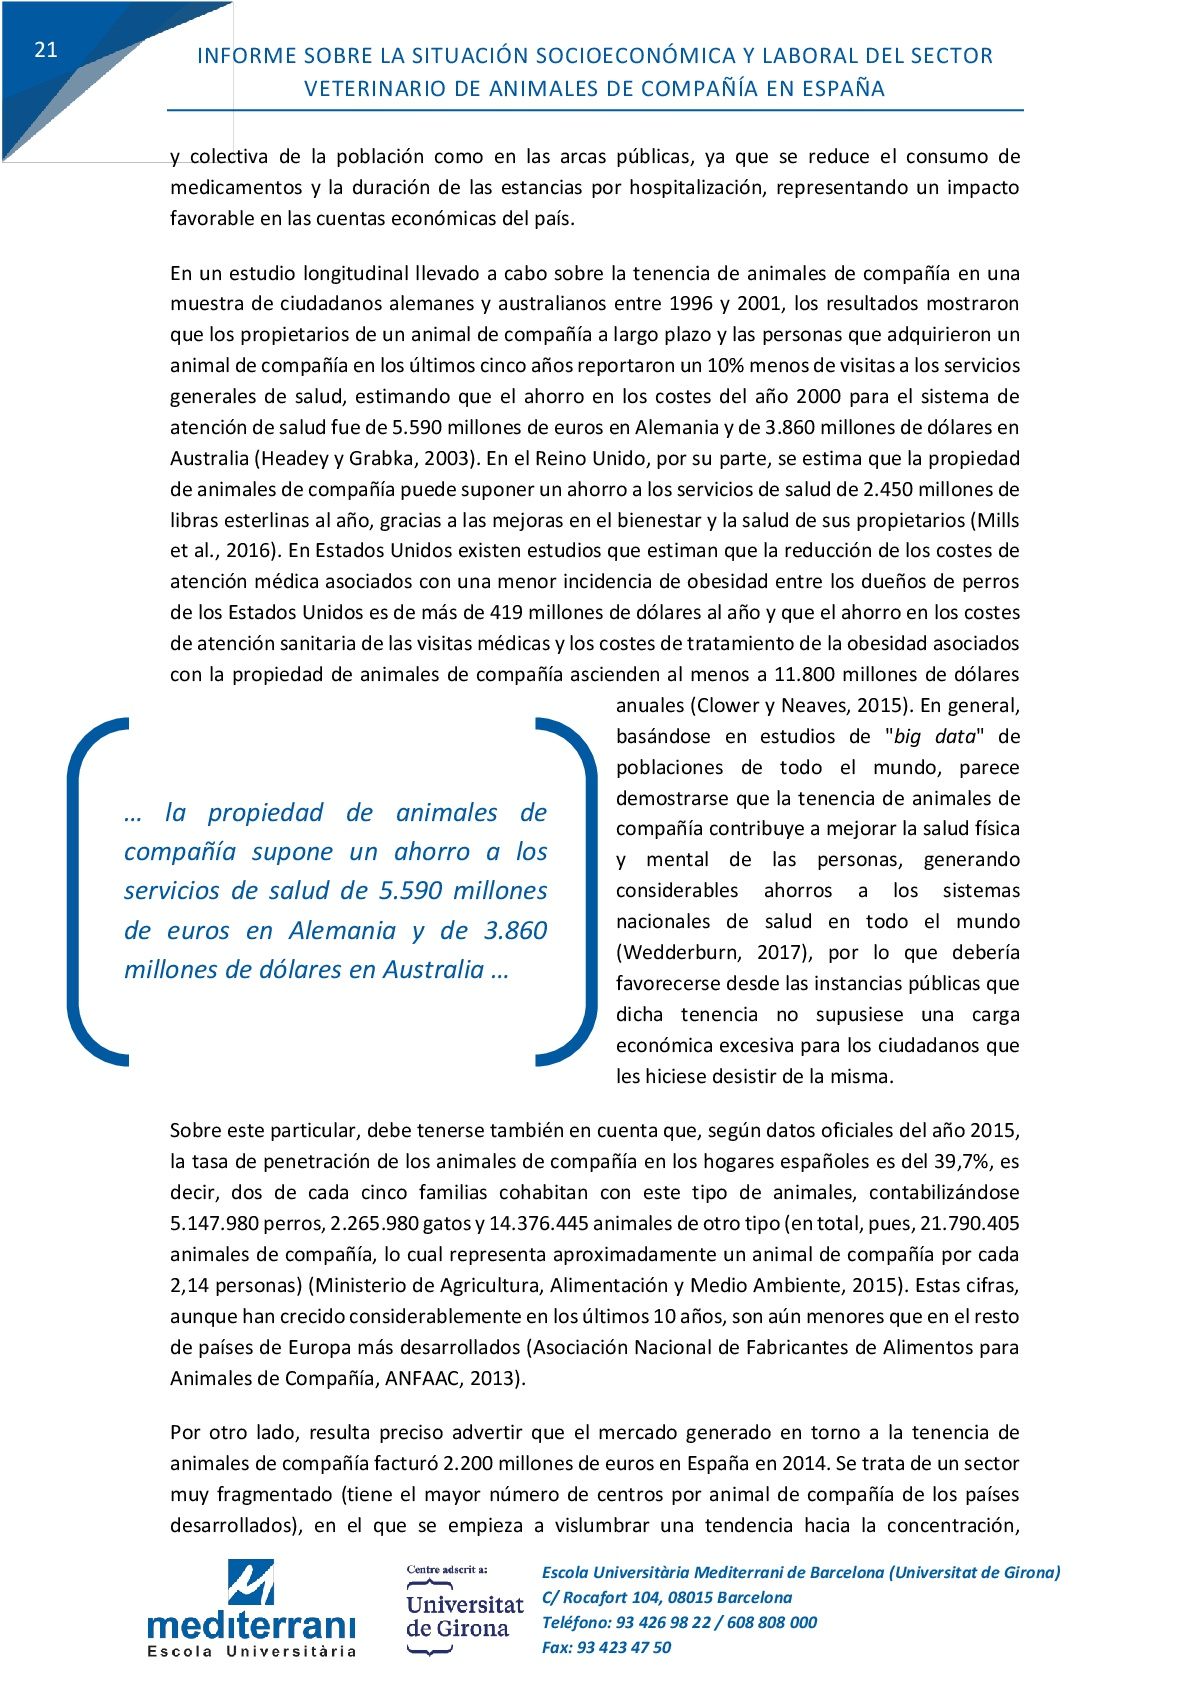 Informe-Veterinario-2017-+-informe-legal-2015-(3)-026